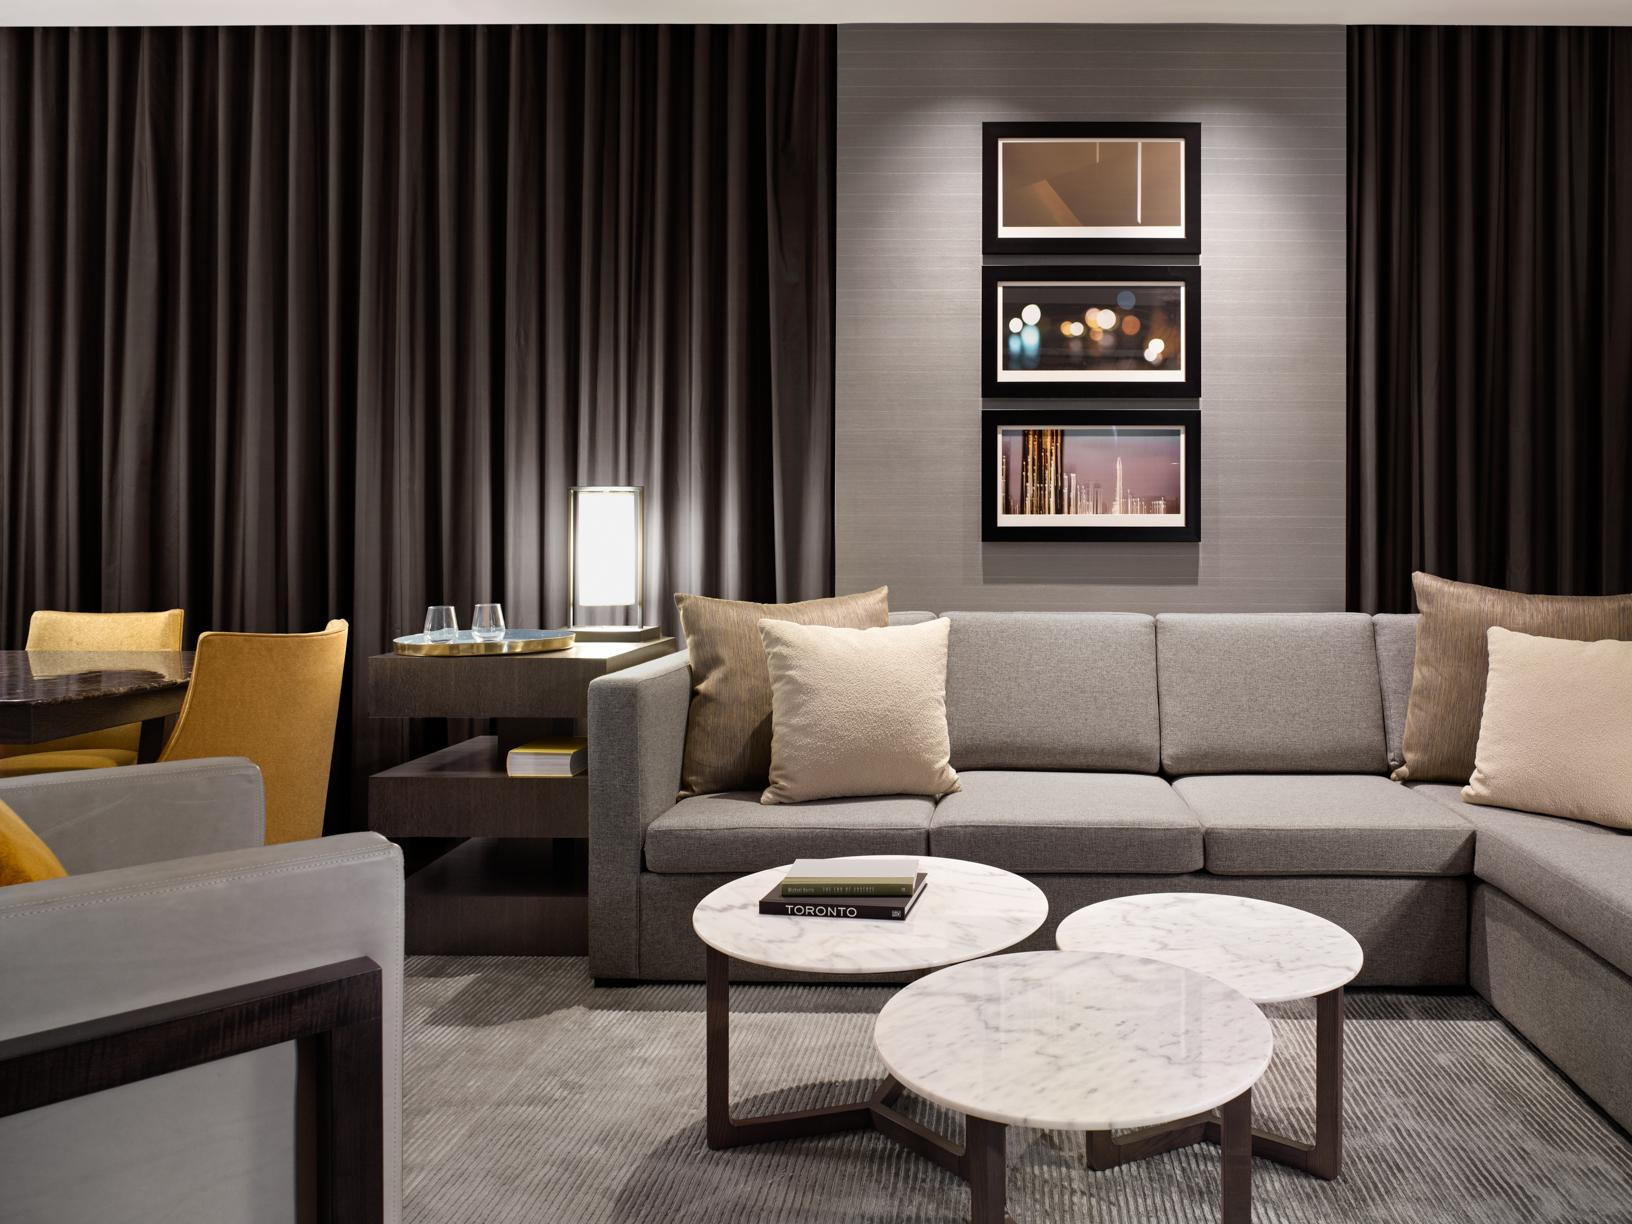 sitting area in a hotel suite with grey couch, white marble coffee table and yellow accent chairs and pillow